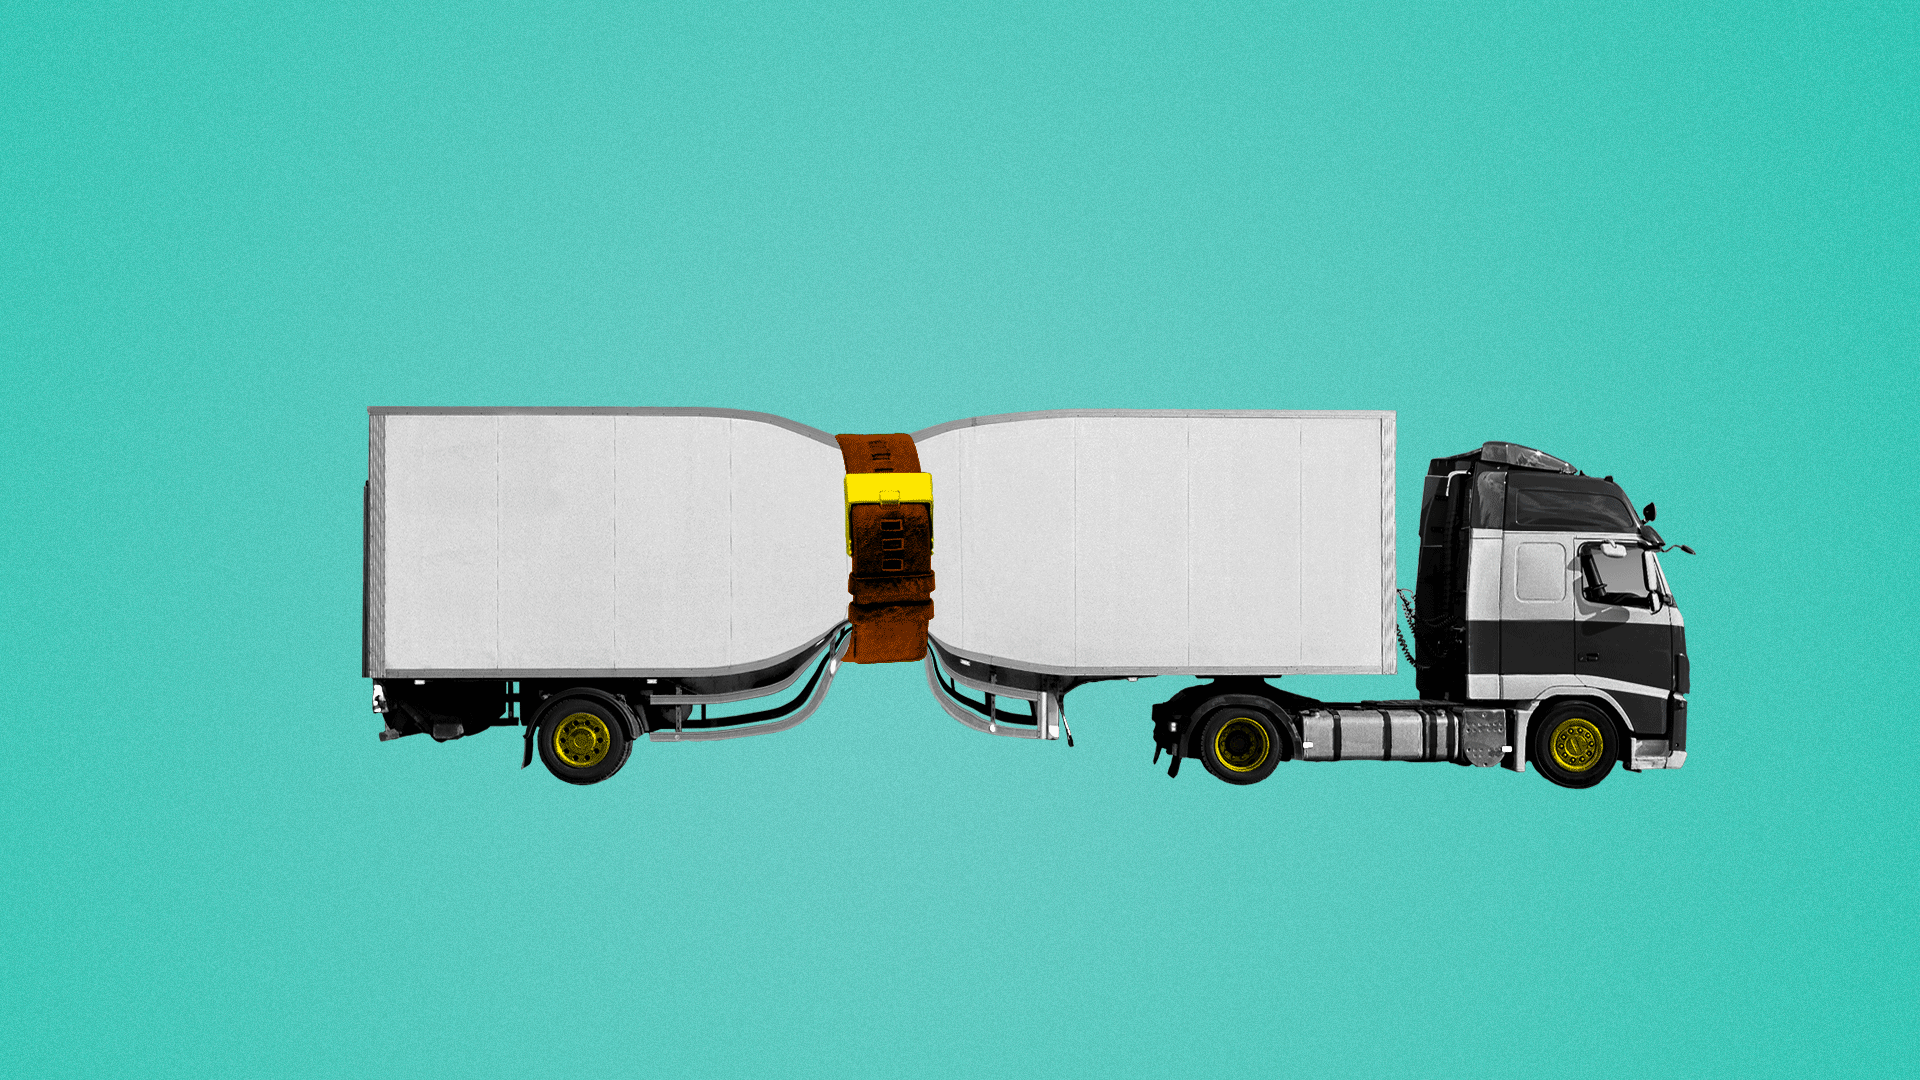 Illustration of a truck for story about pollution regulations